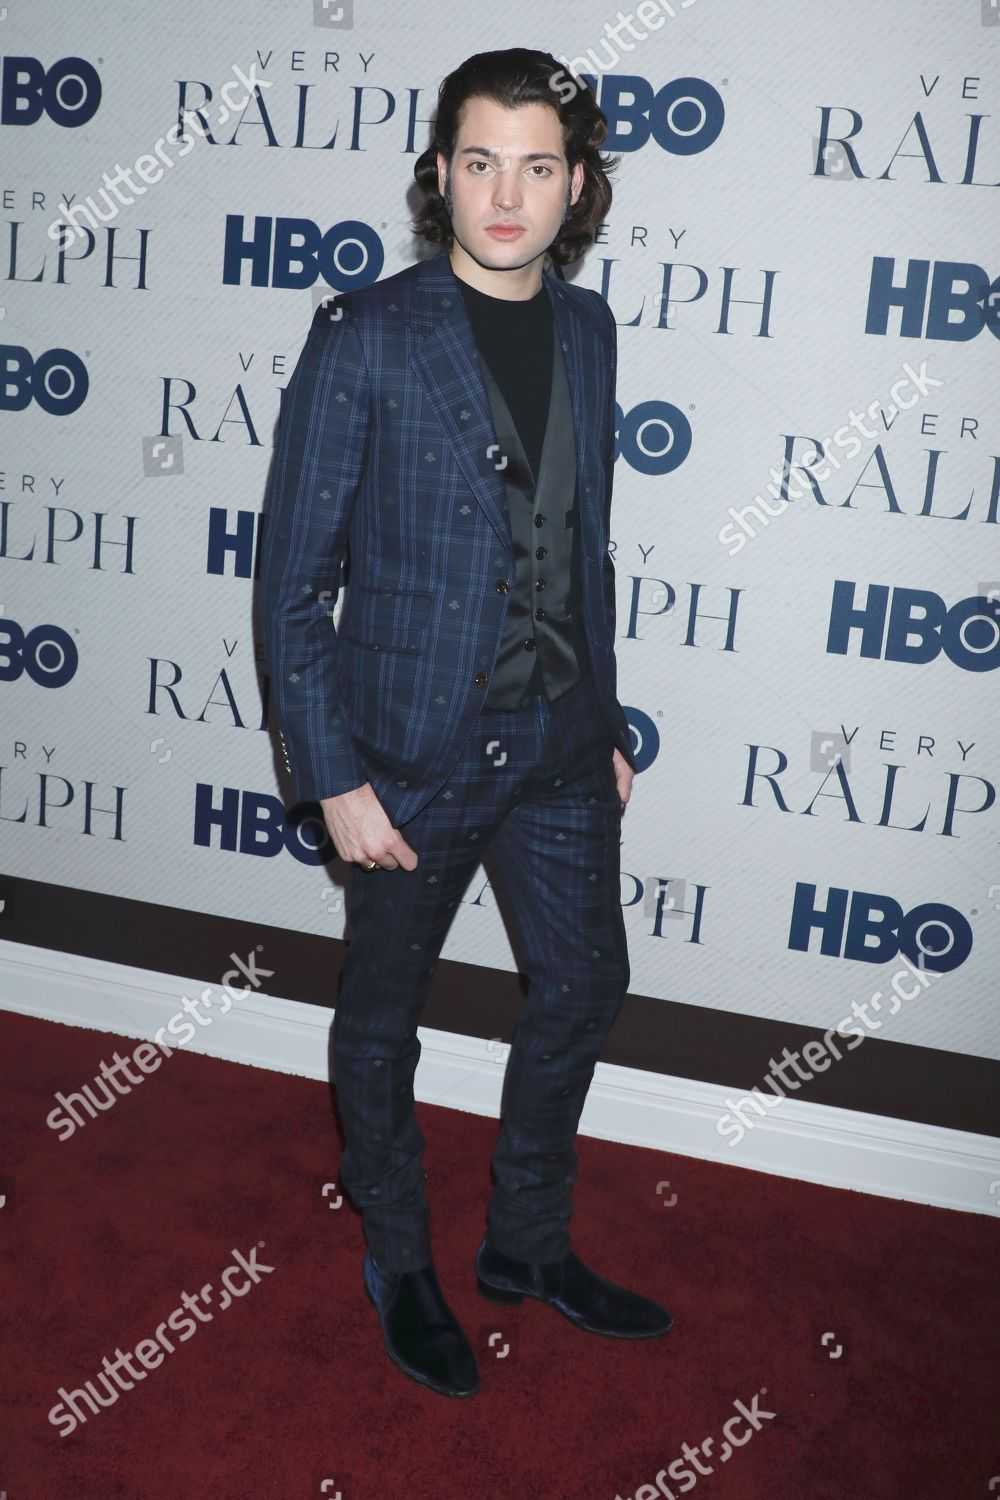 Stock photo of 'Very Ralph' film premiere, Arrivals, The Metropolitan Museum of Art, New York, USA - 23 Oct 2019